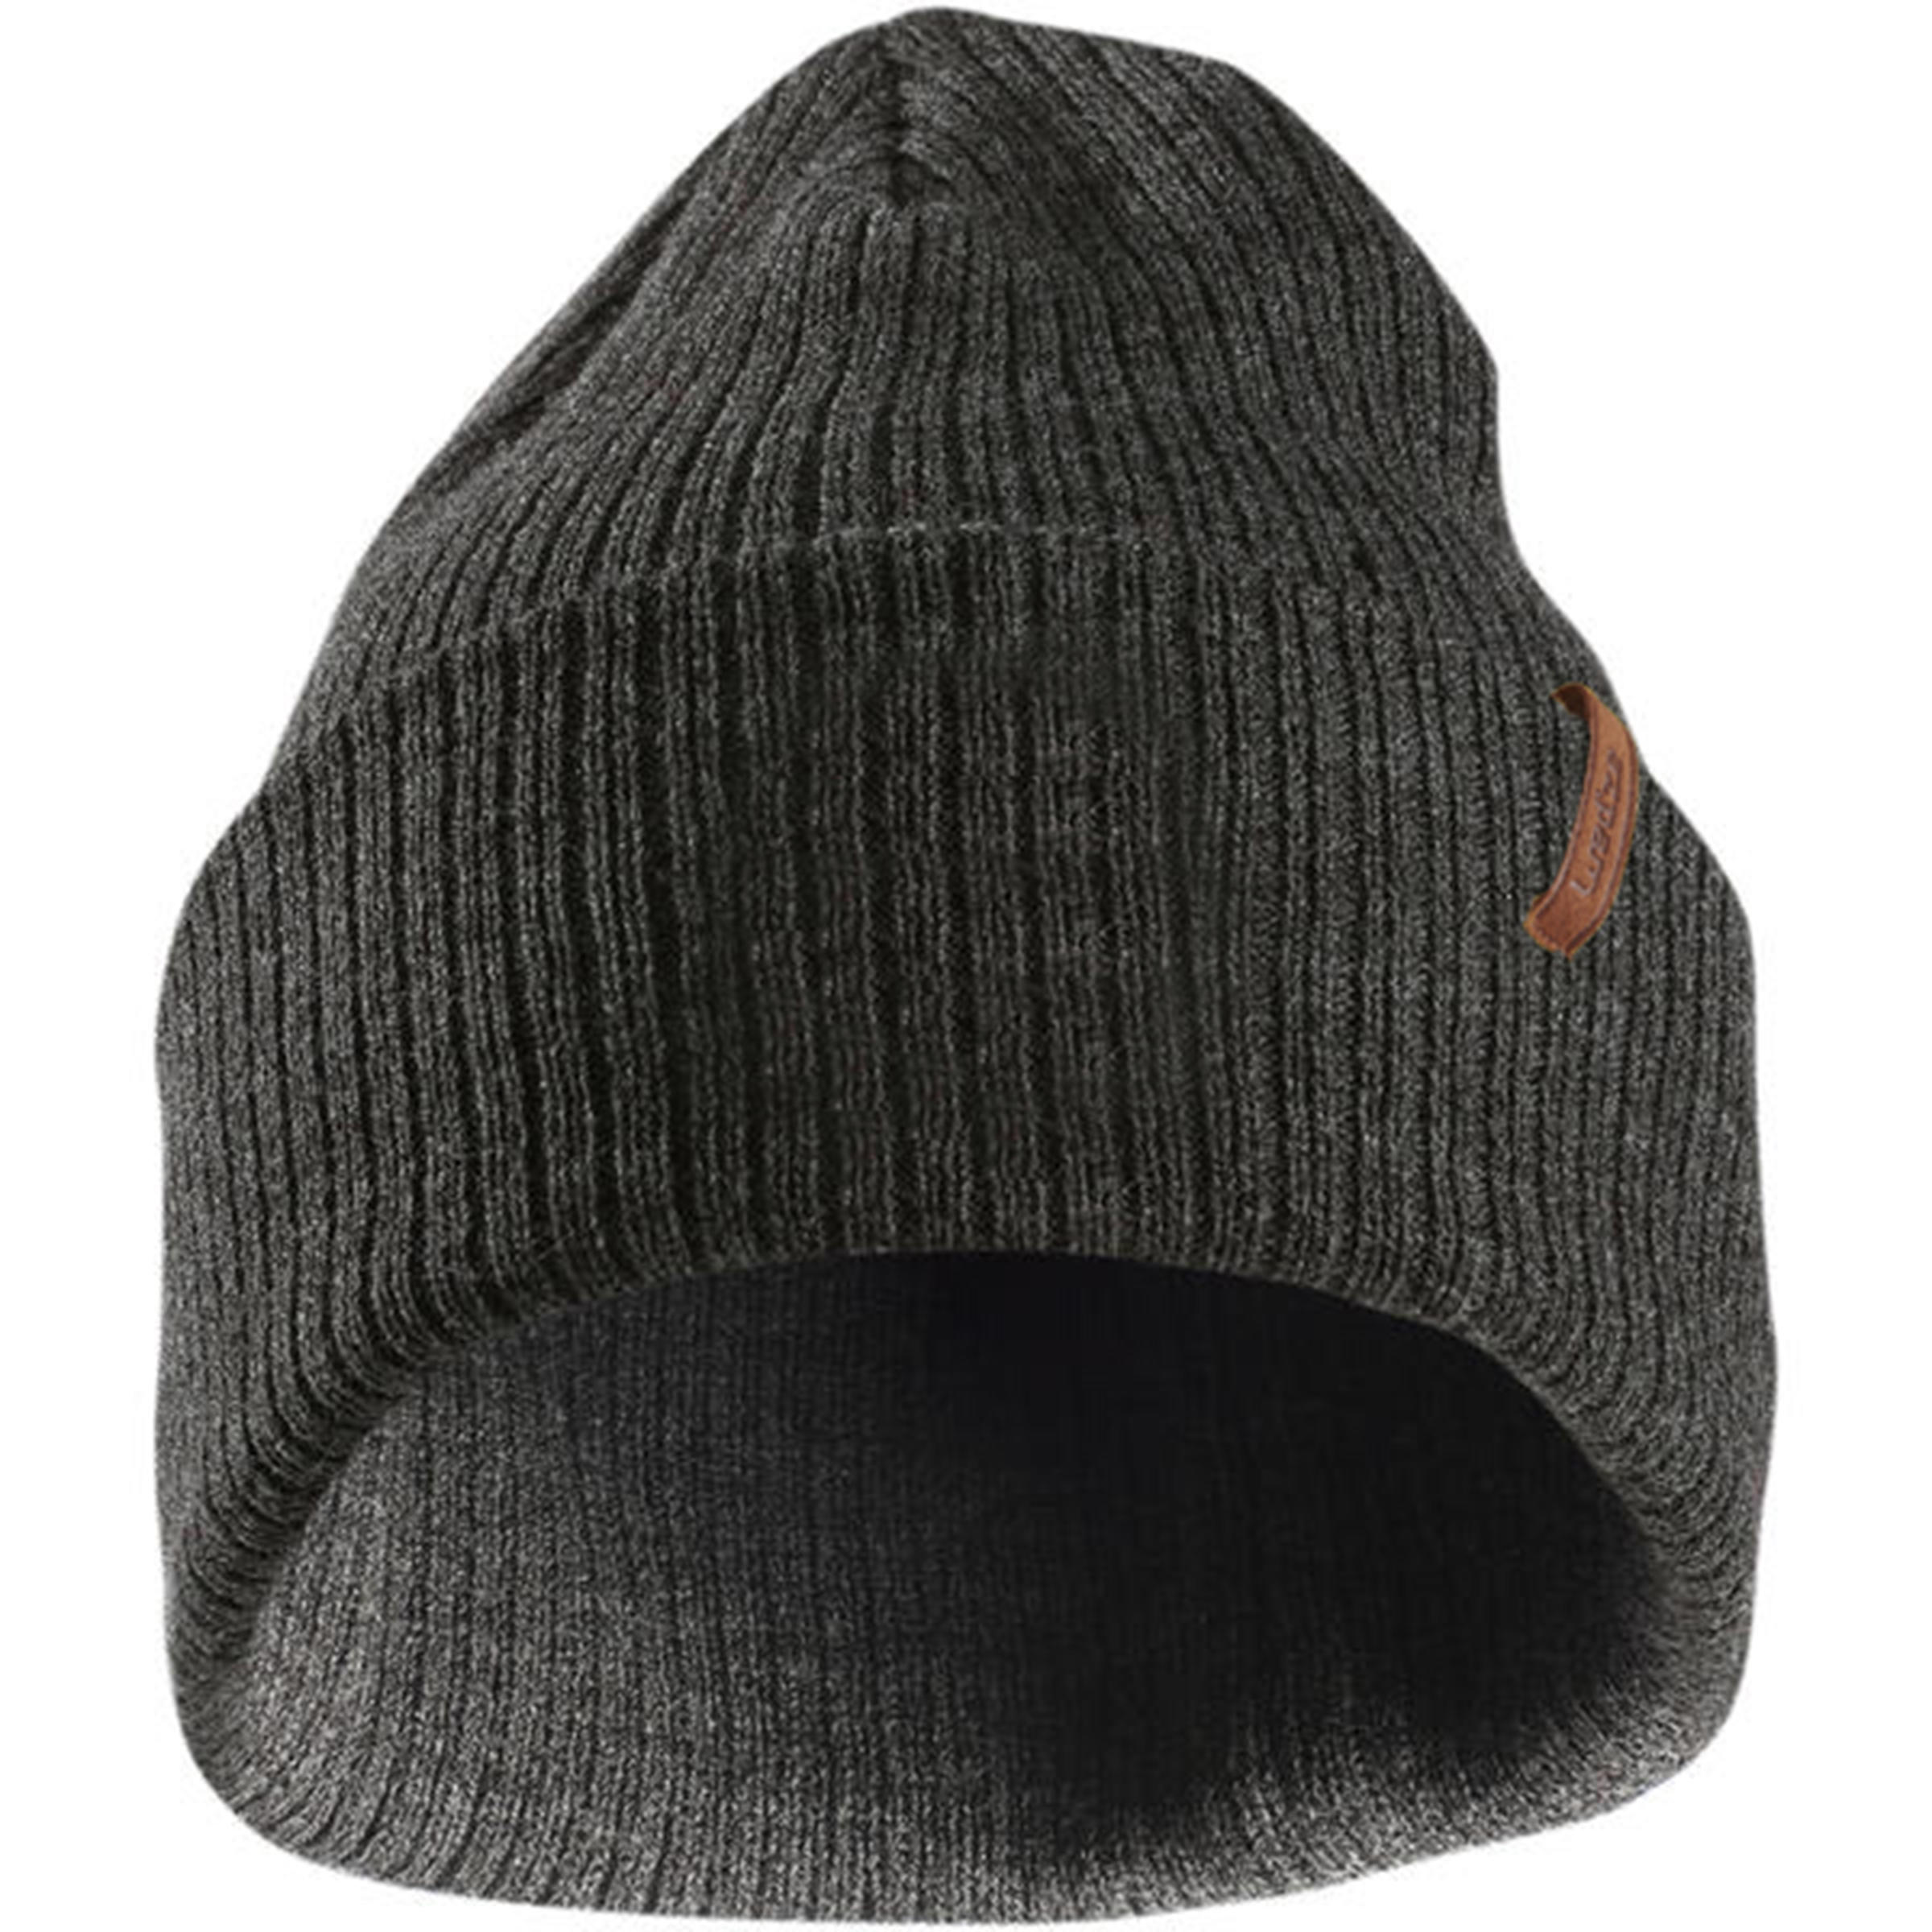 Fisherman Adult Ski Hat - Grey